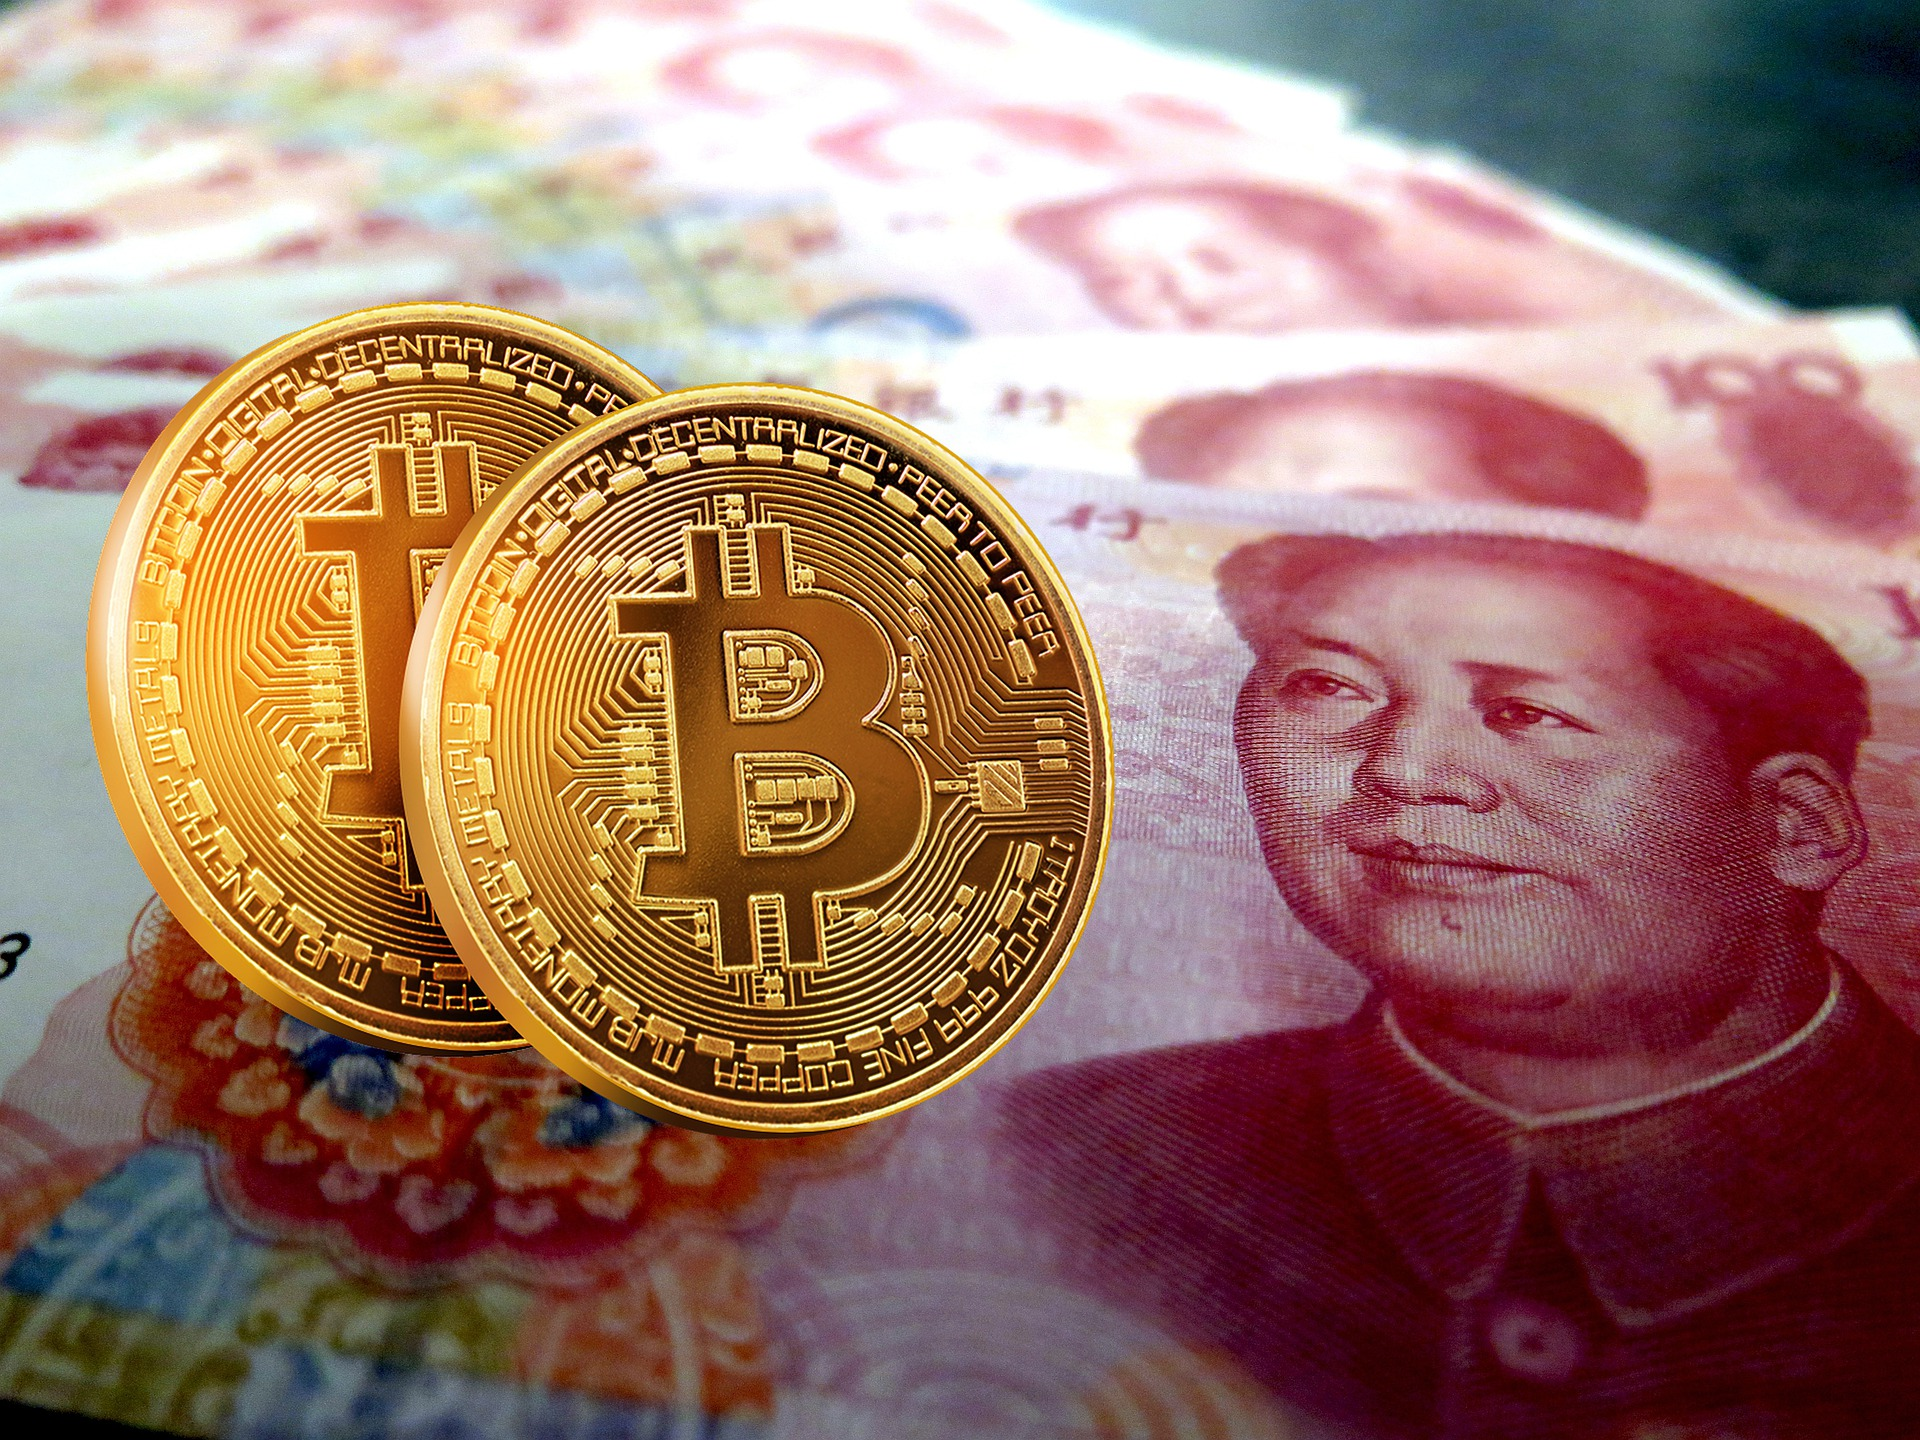 China behind the new crypto regulations